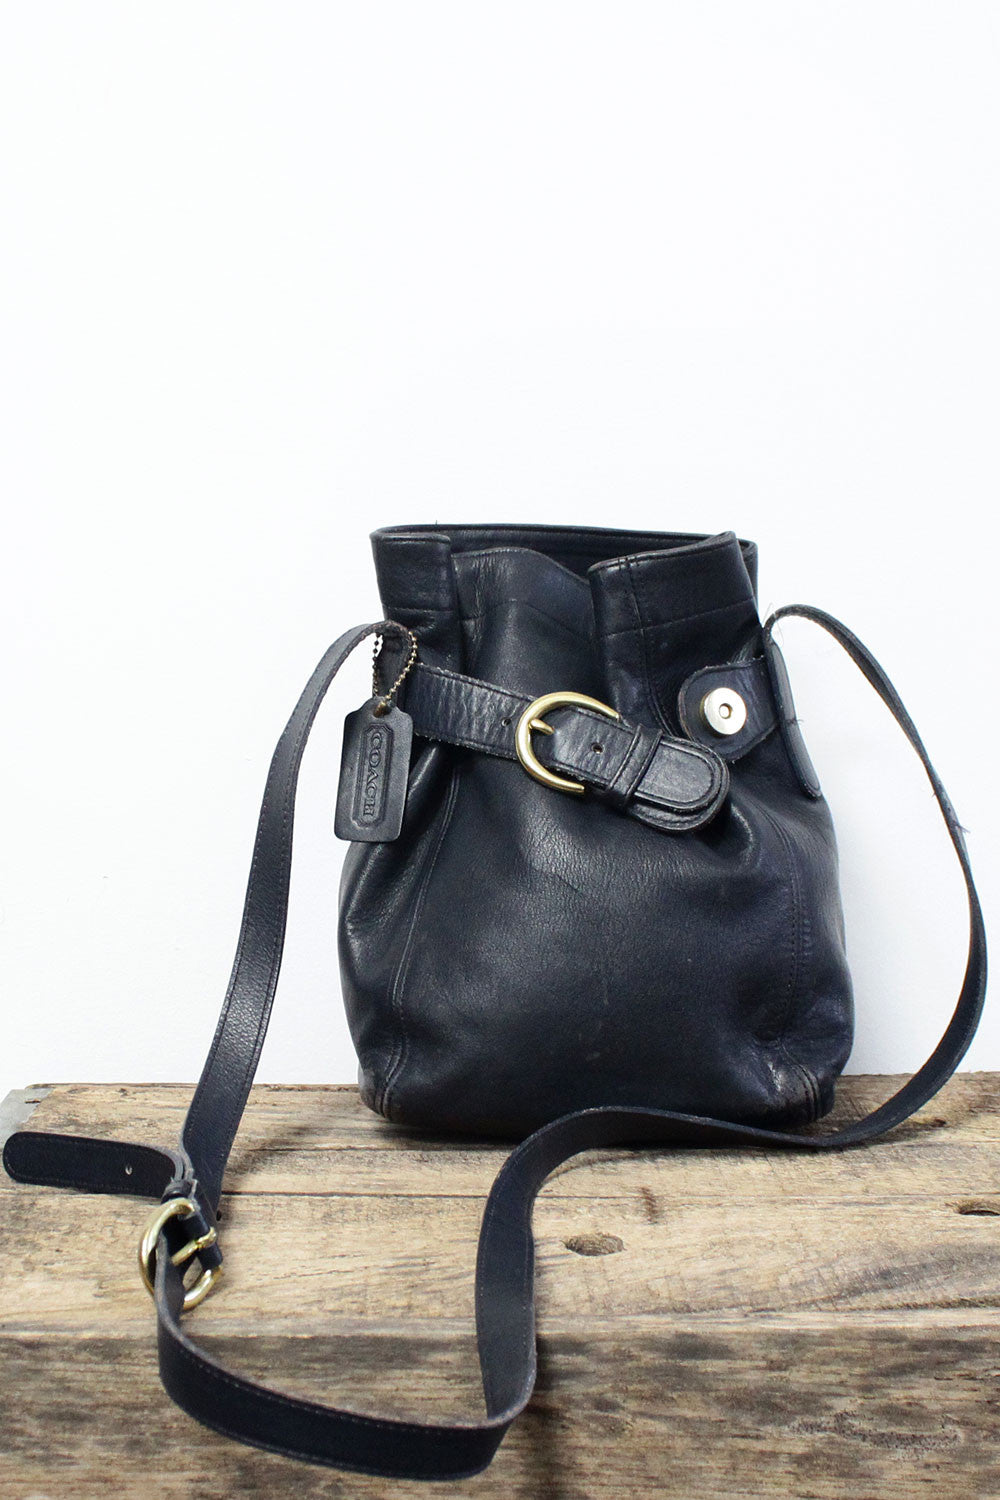 Coach Mini Bucket Bag